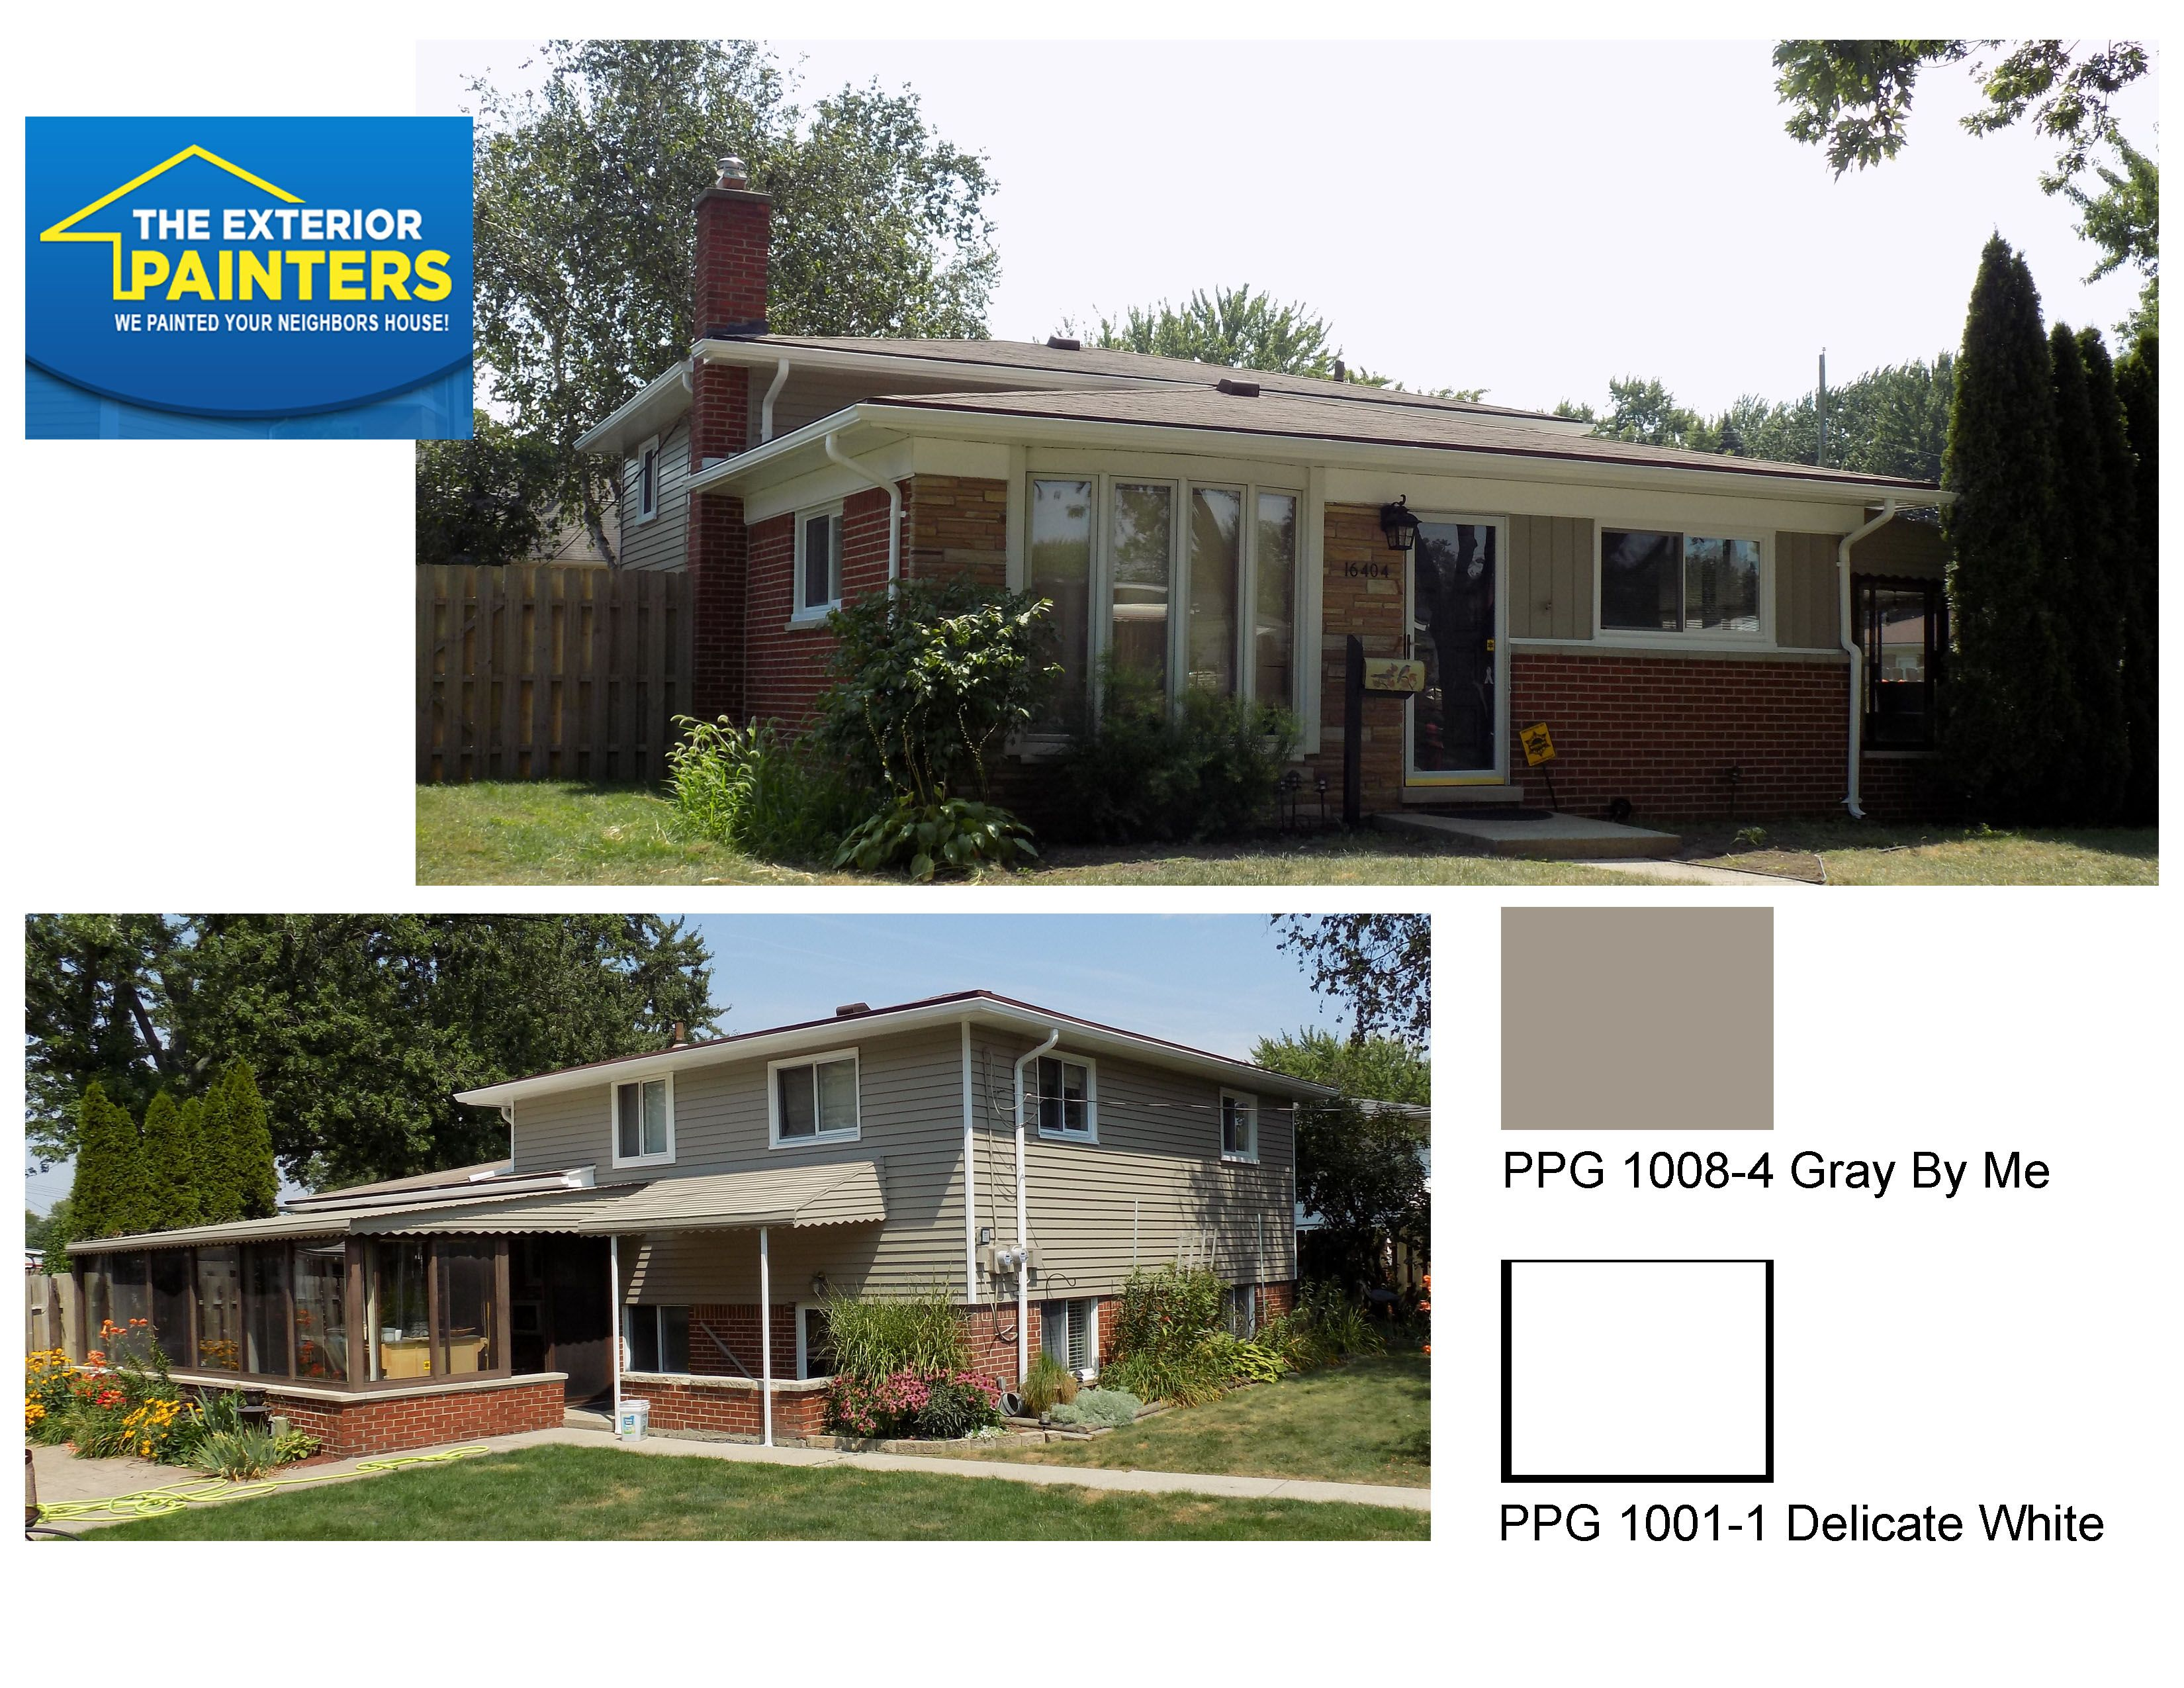 PPG Gray By Me for siding. PPG Delicate White for the trim. PPG Black Magic for the front door.